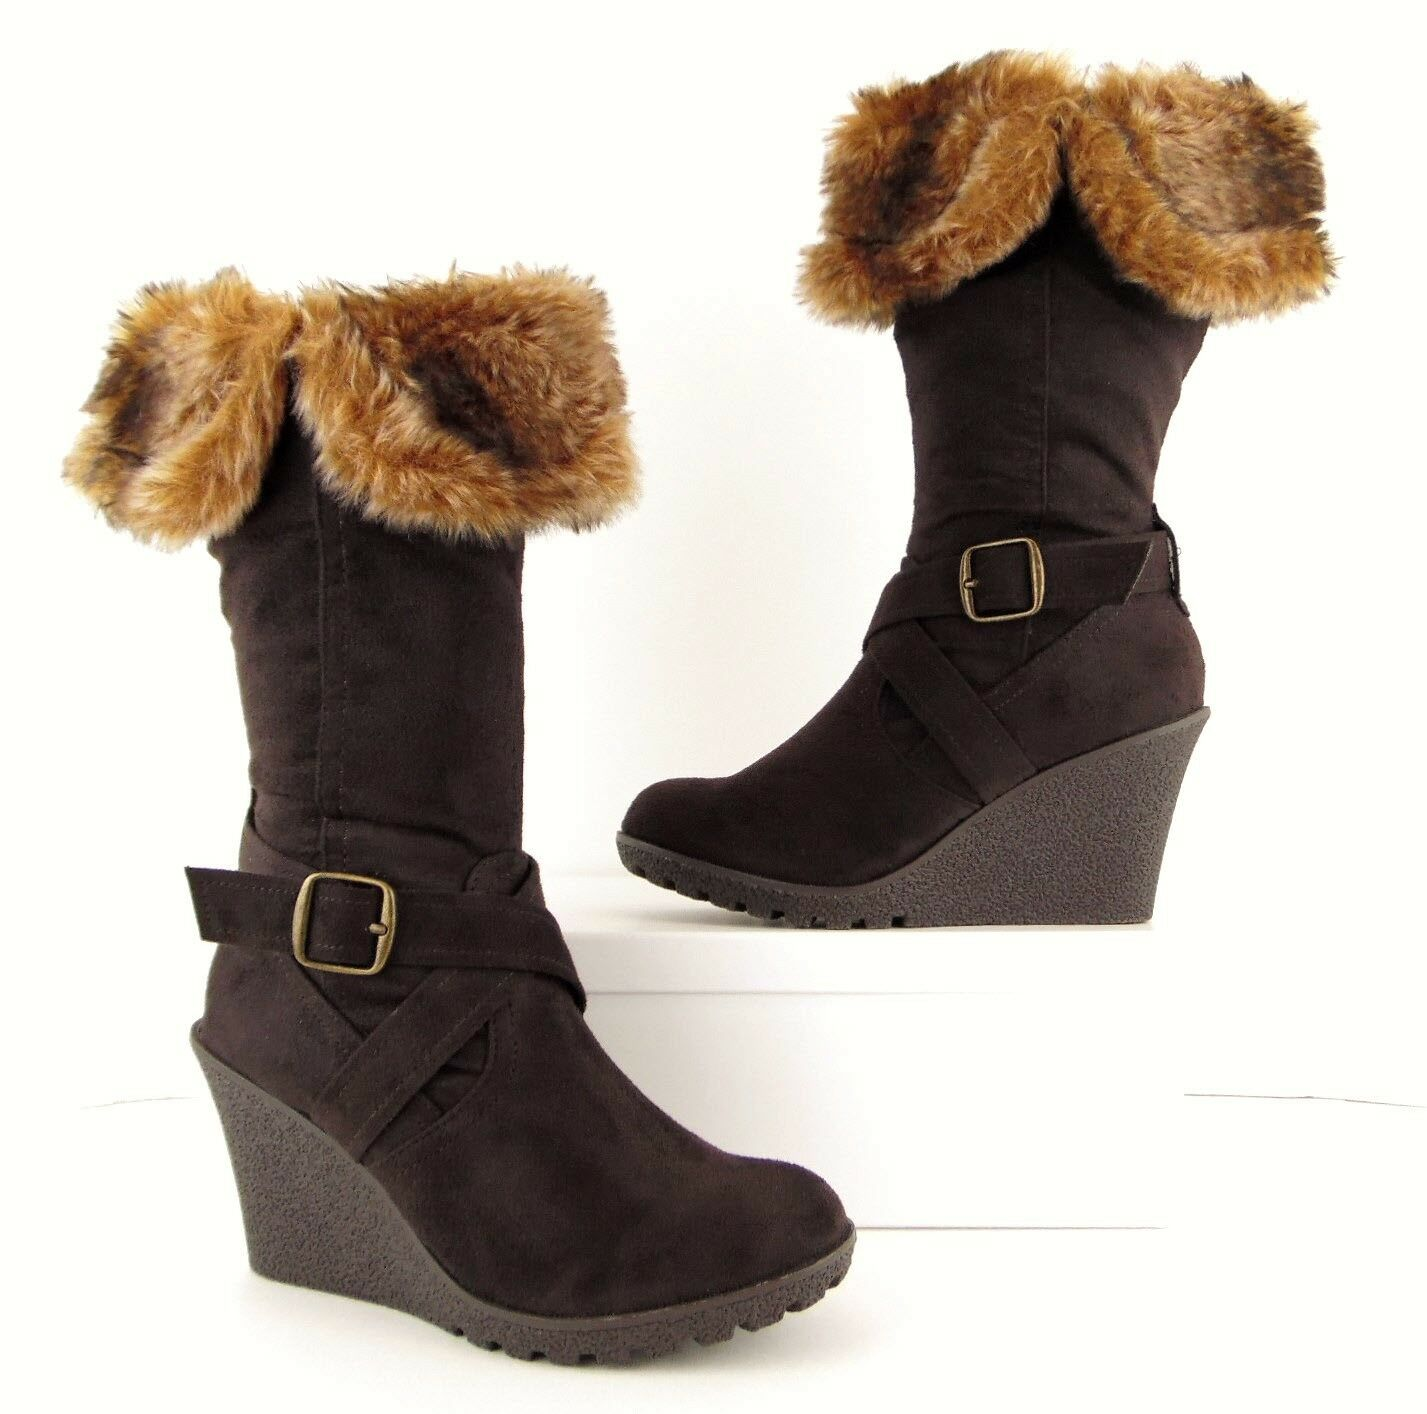 NWOB XOXO Brown Faux Suede + Tan Fur Wedge Heel Boots shoes Women's 6 M (S536)